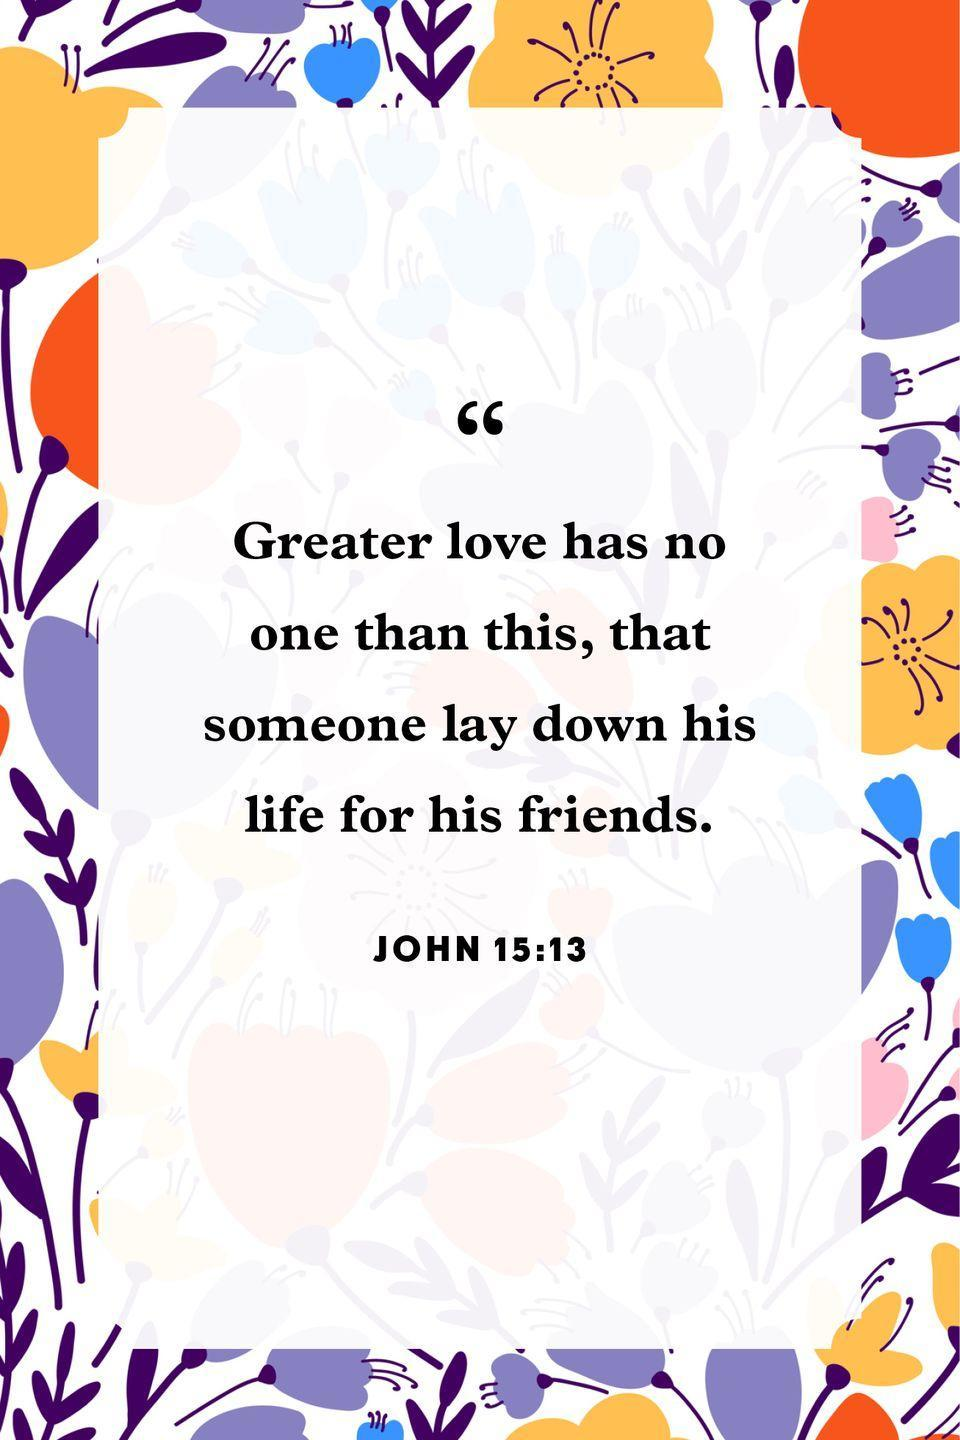 "<p>""Greater love has no one than this, that someone lay down his life for his friends.""</p>"